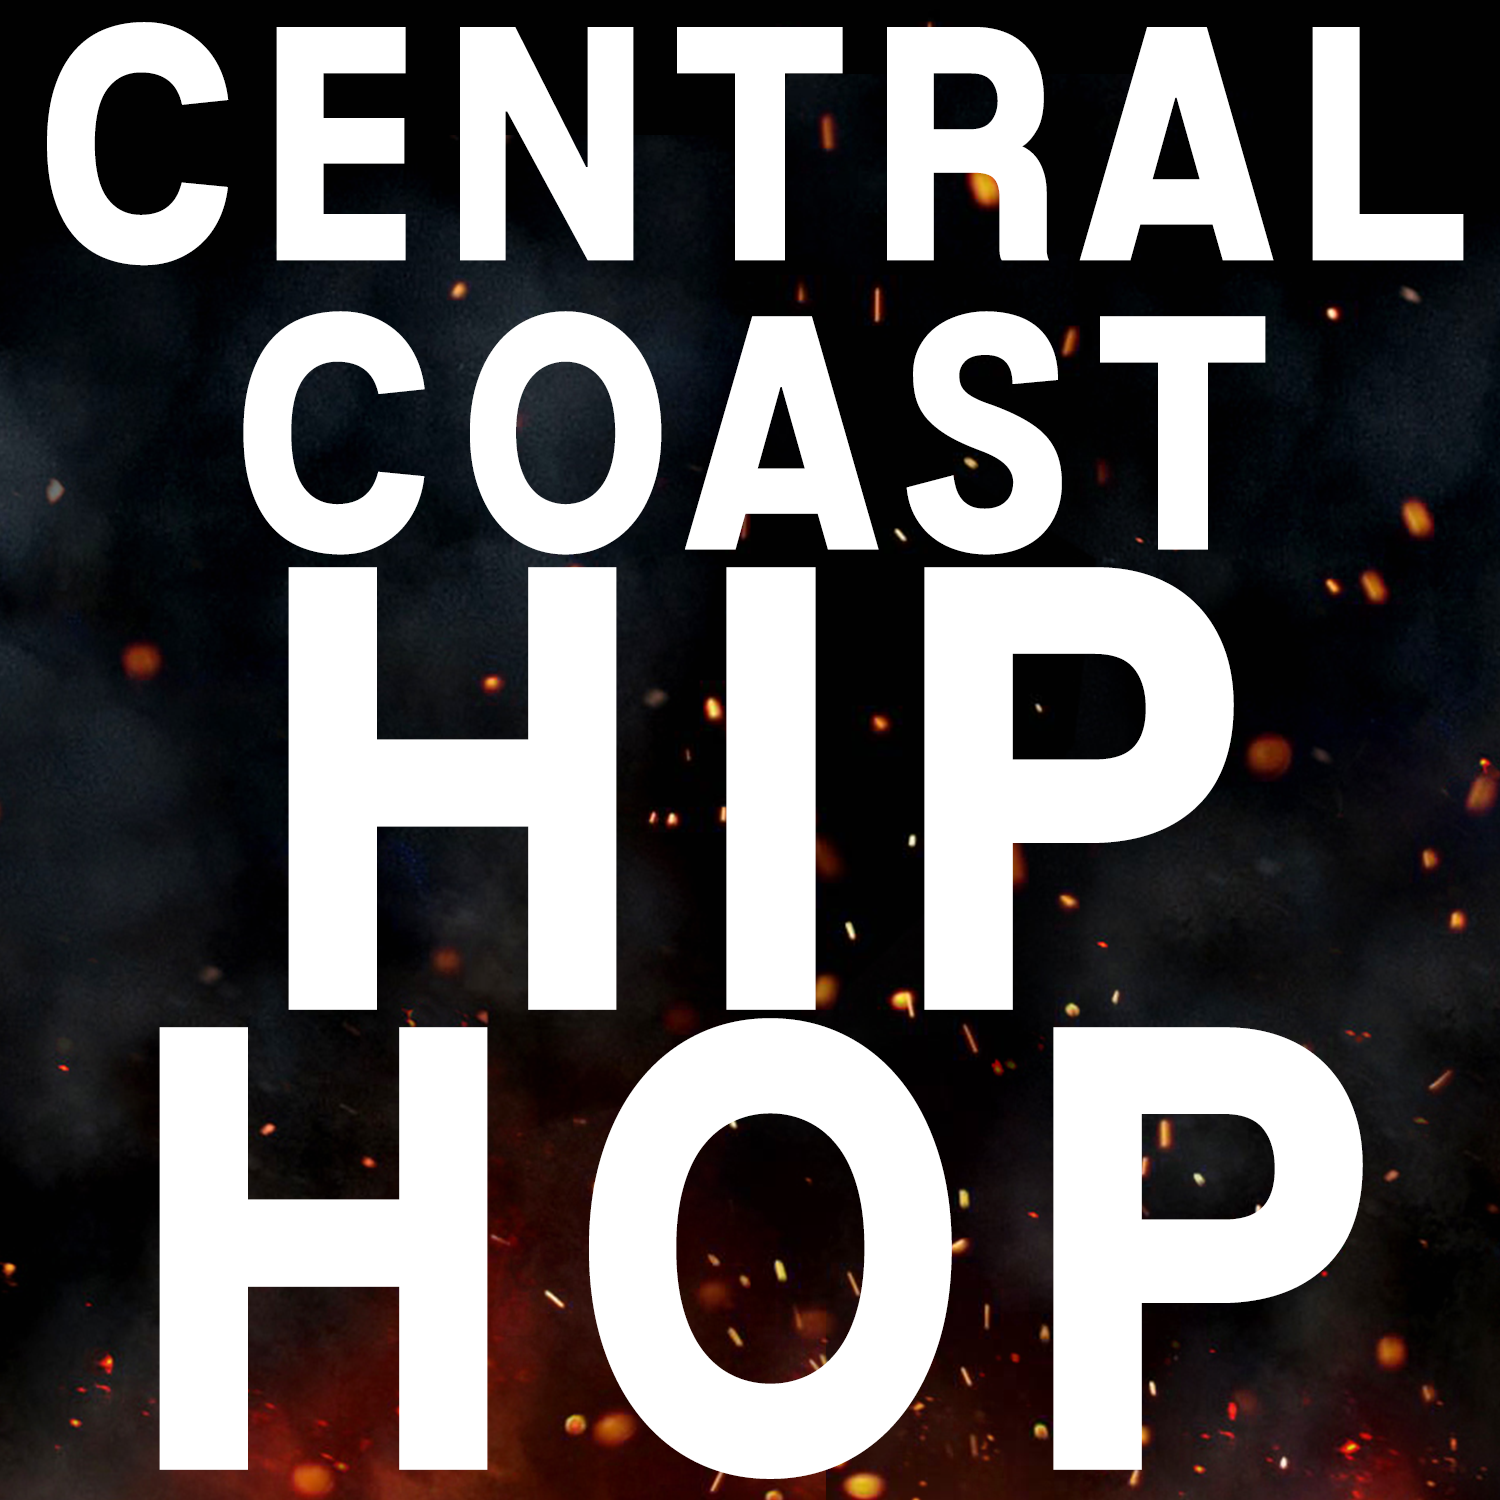 Central Coast Hip-Hop